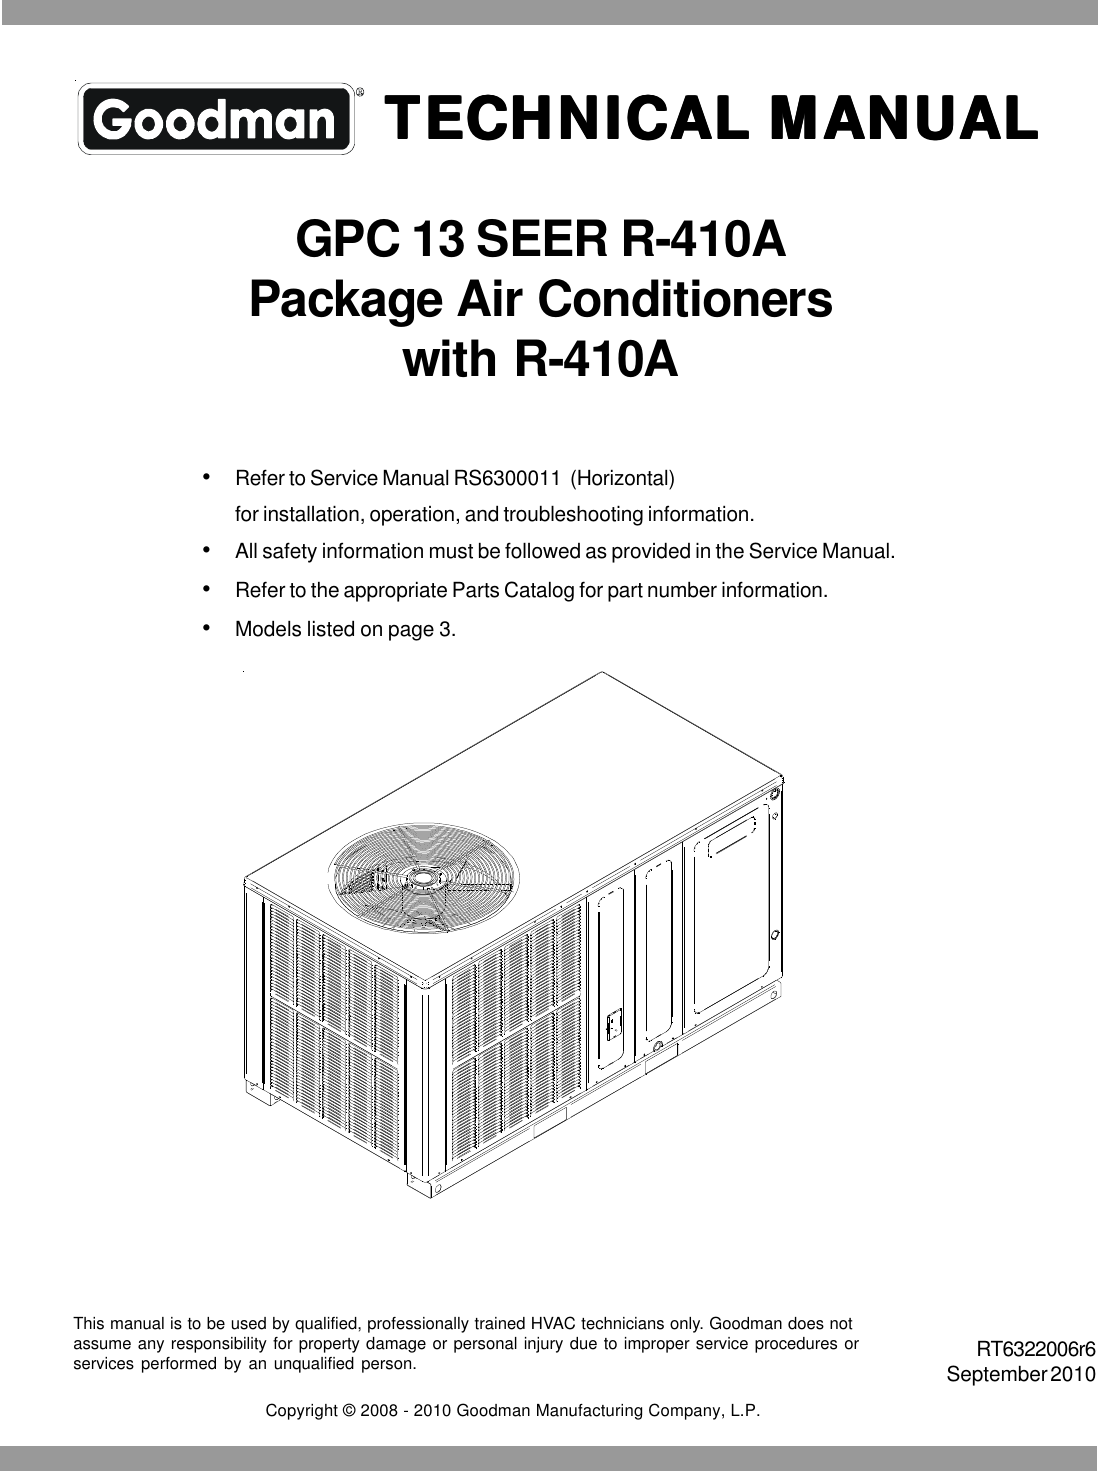 Goodmans Air Conditioner Gpc 13 Seer R 410a Users Manual Wiring Schematic For A 413157 12 Volt Relay